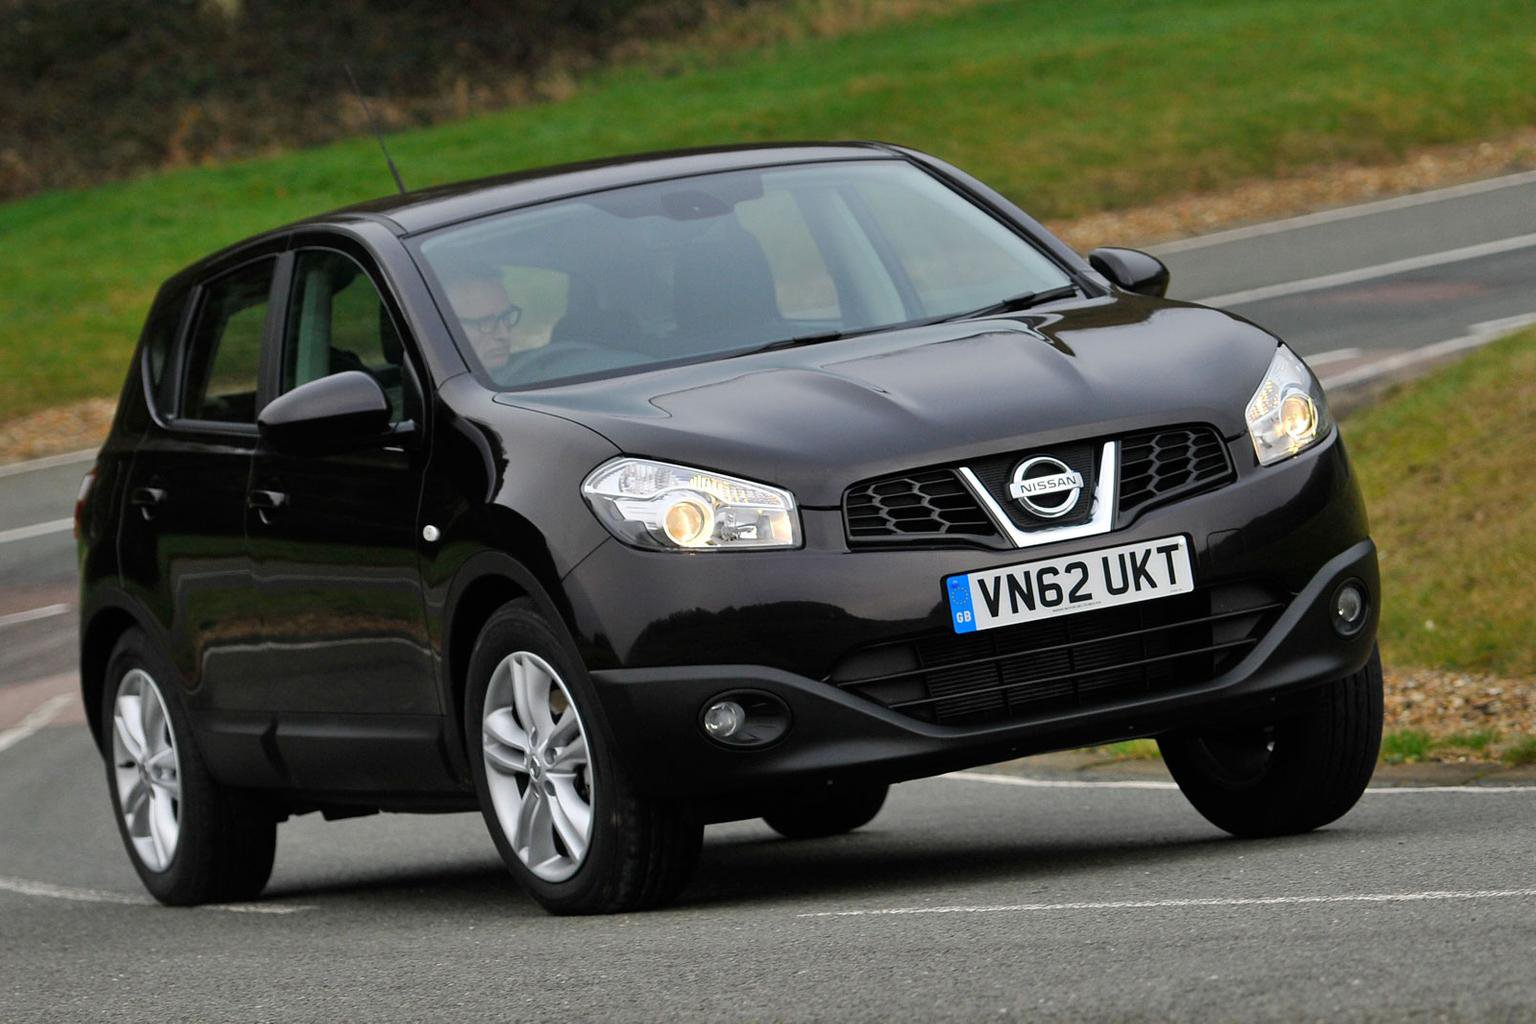 Deals: Save thousands on Qashqai and X-Trail